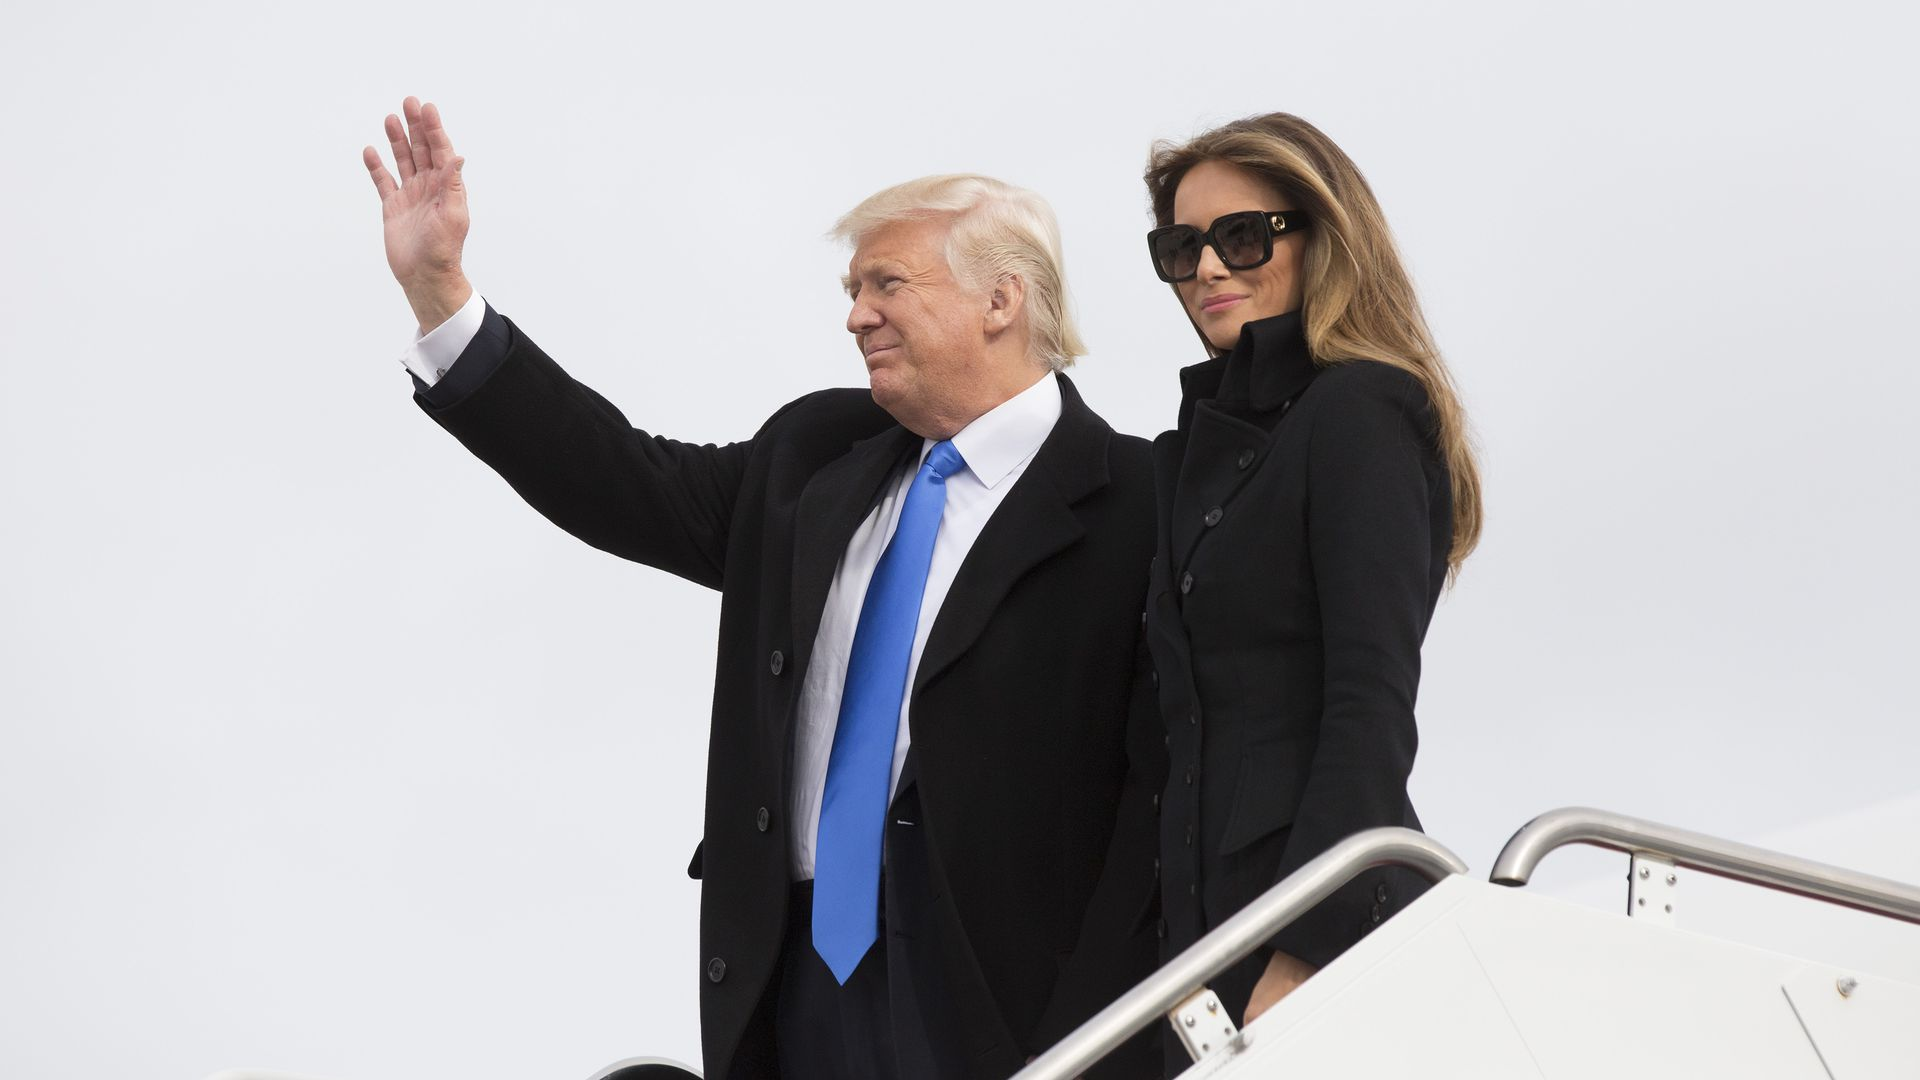 Donald Trump and Melania standing next to each other as the deplane from Air Force One. Trump is waving to a crowd. Melania is wearing all black and sunglasses and is smirking.